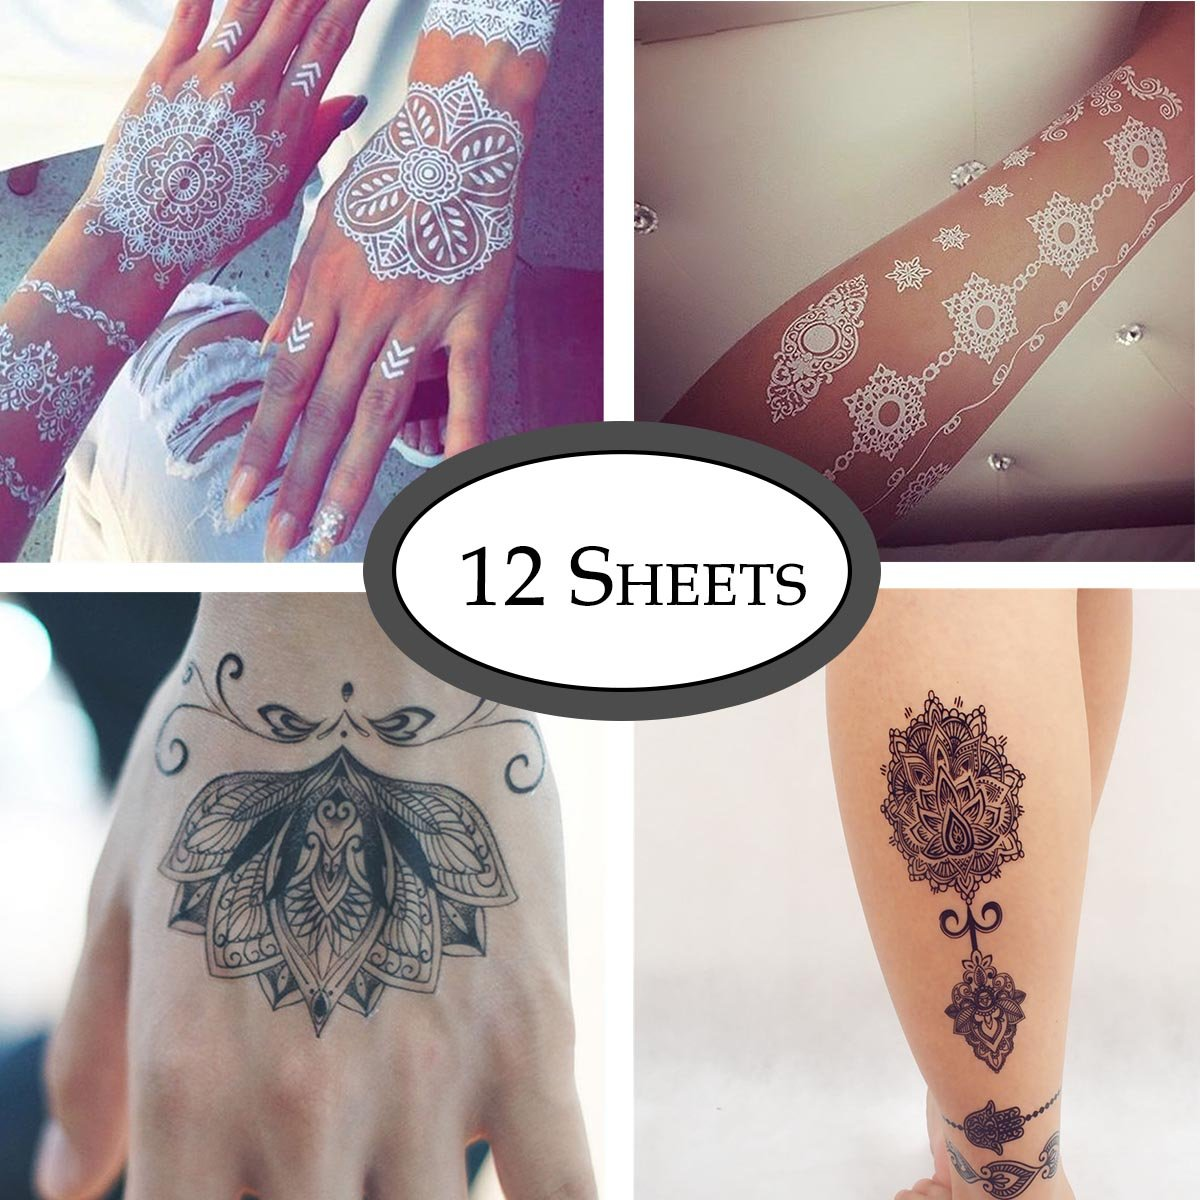 COKOHAPPY 12 Sheets Black and White Lace Temporary Tattoo Dream Cathcher Mandala Lotus Crown for Women Girls